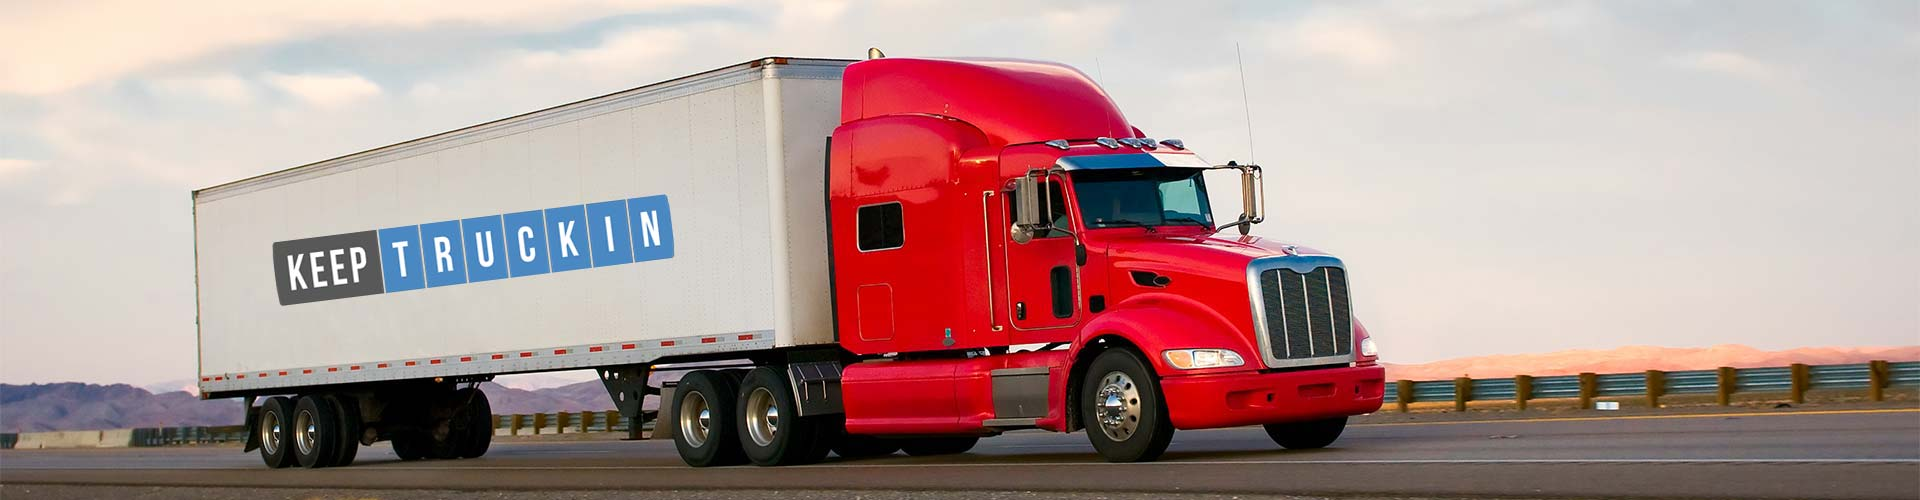 ELD and HOS Trucking Software Solutions | KeepTruckin